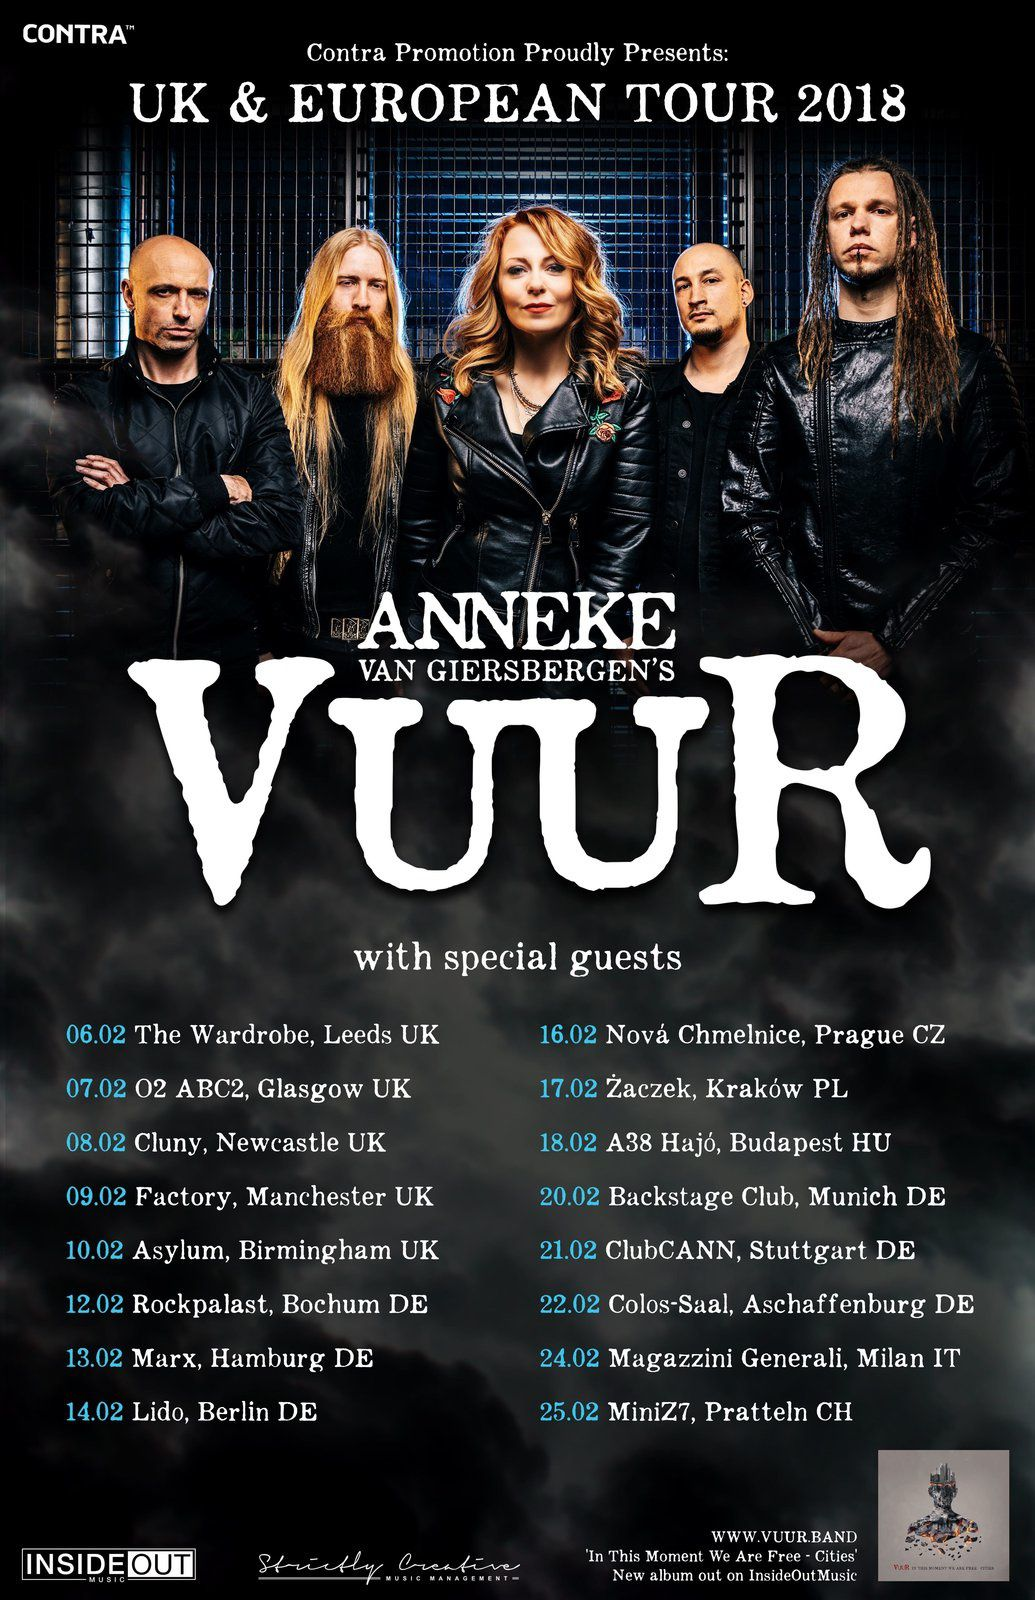 VUUR live dates for UK and Europe